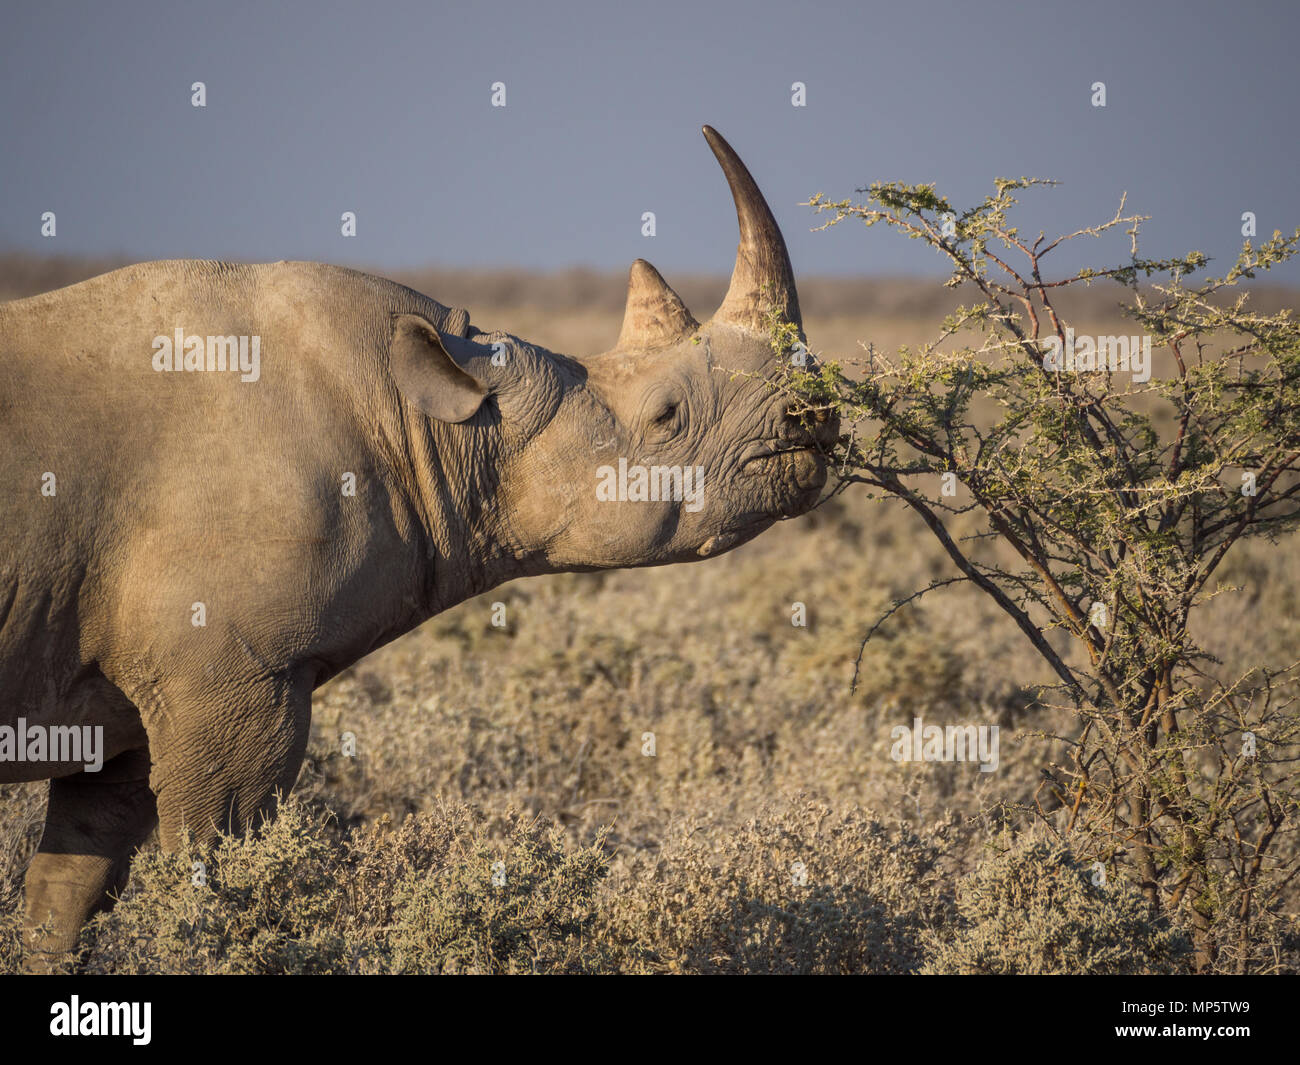 Portrait of large endangered black rhino feeding on small bush in Etosha National Park, Namibia, Africa - Stock Image